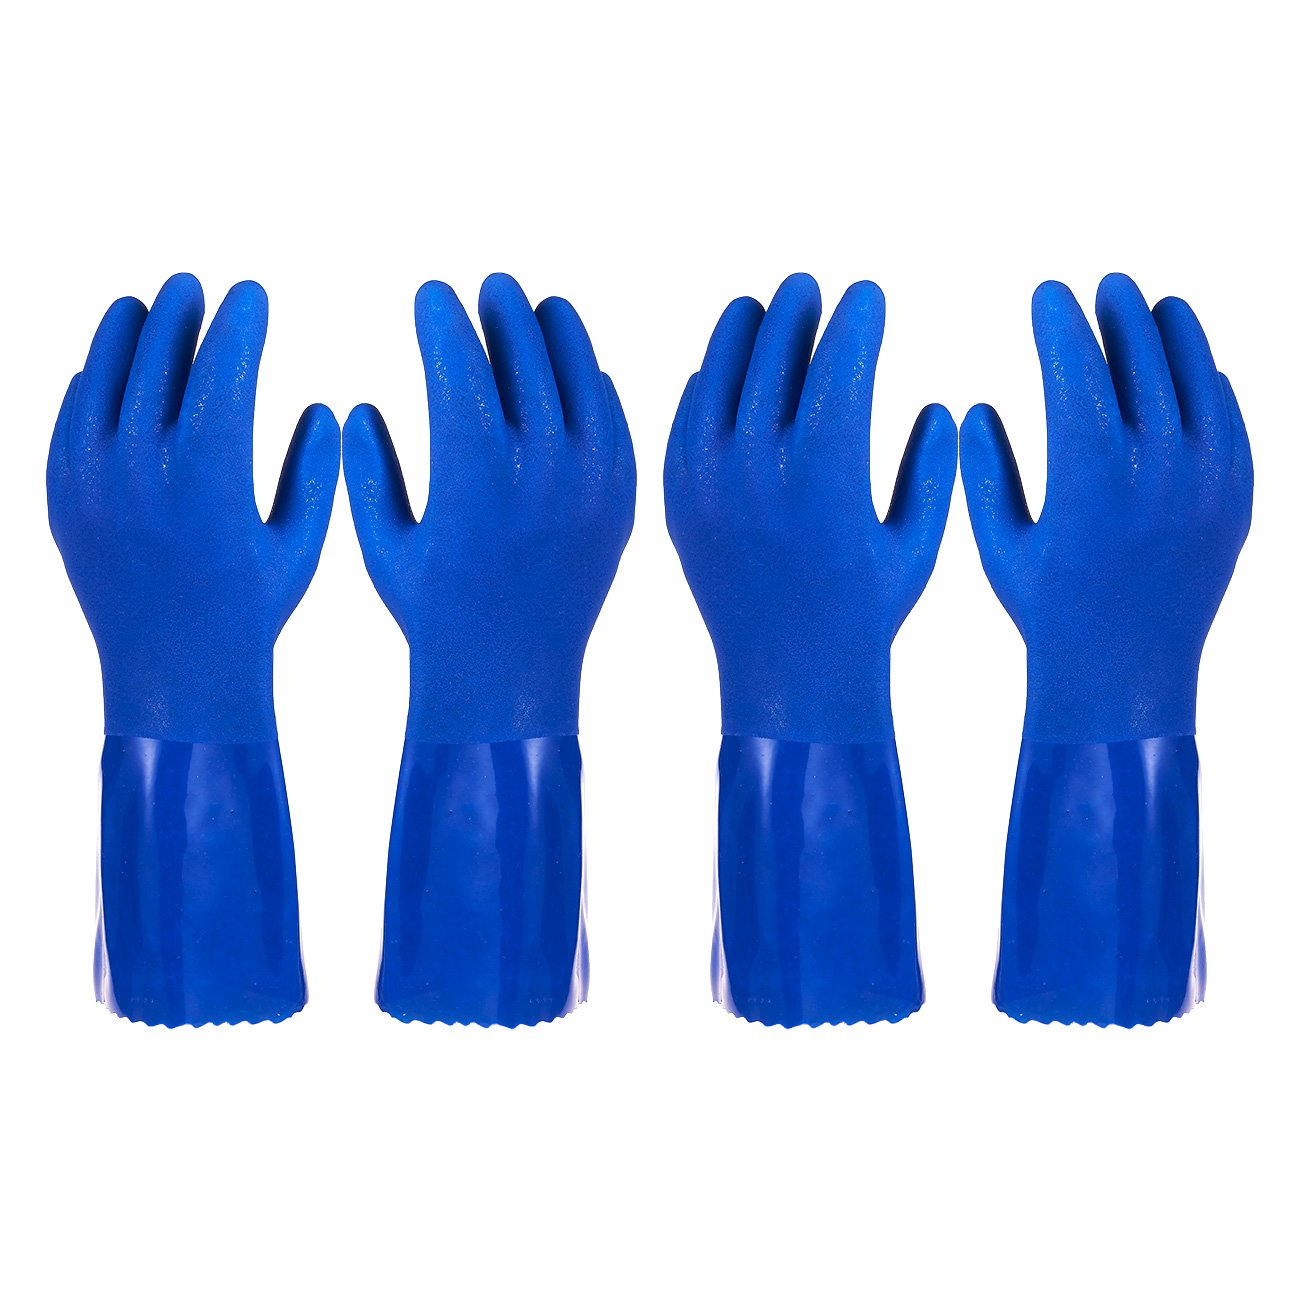 Pack of 2 Pairs Household Gloves - Cotton Lined Dish Gloves - Dishwashing Gloves - Rubber Gloves - Kitchen Gloves, Blue, Medium by Juvale